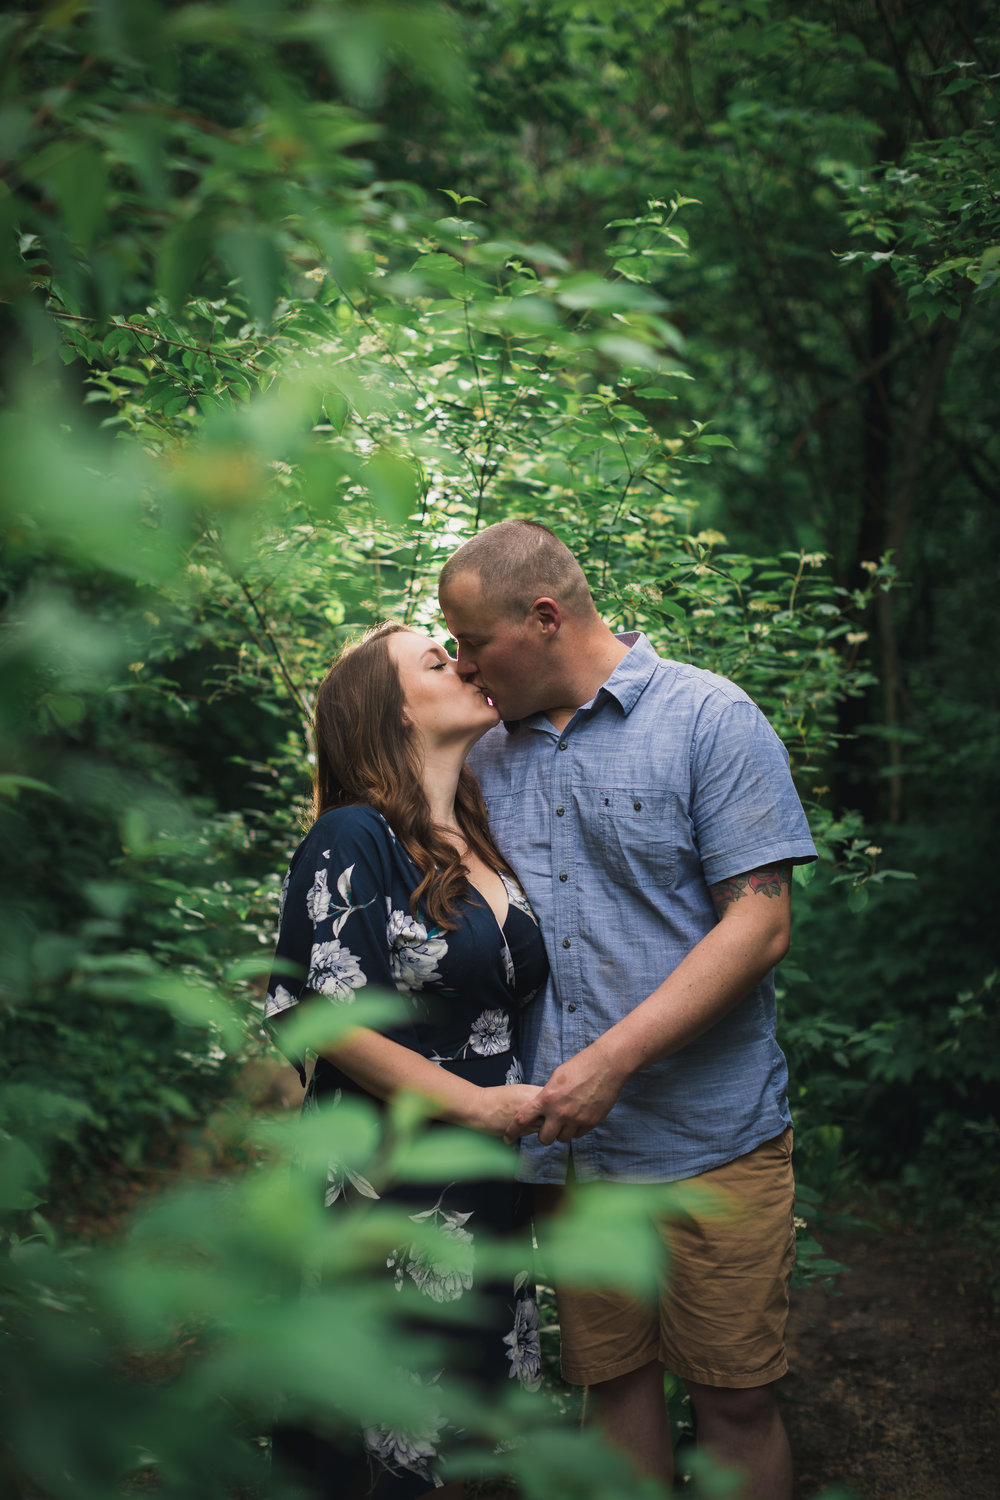 20180623_lauren_and_justin_engagement_27_5R3A0824.jpg